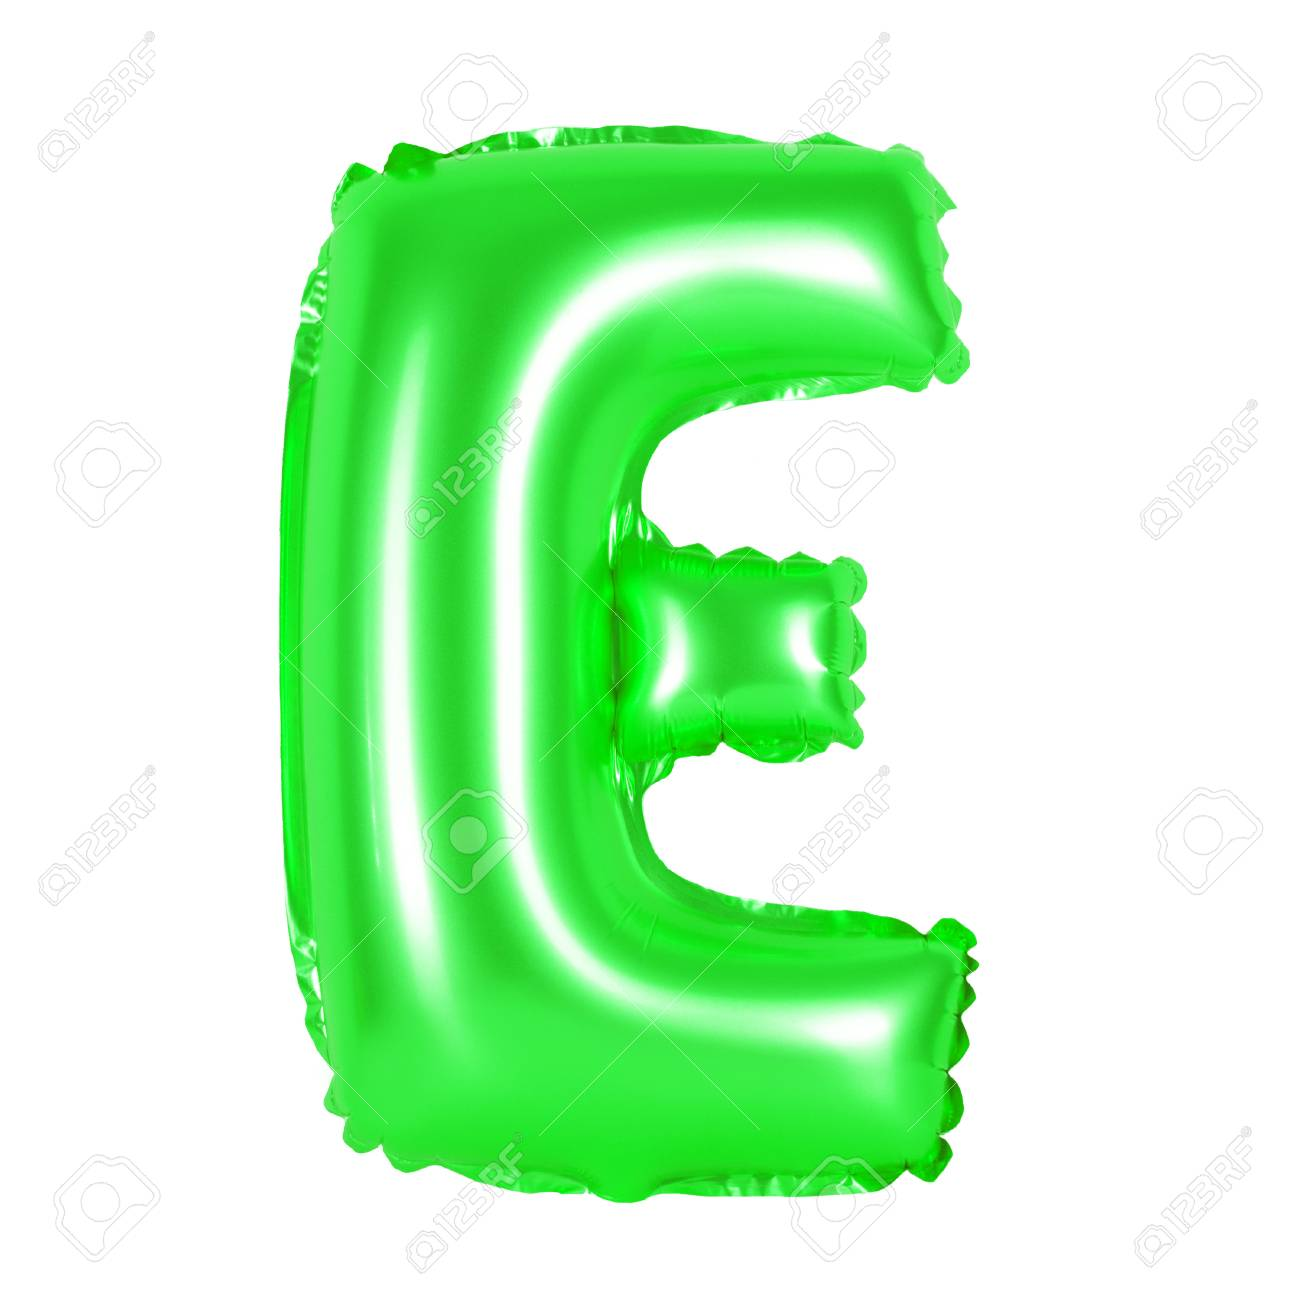 Letter e from english alphabet of balloons on a white background letter e from english alphabet of balloons on a white background green stock photo thecheapjerseys Choice Image